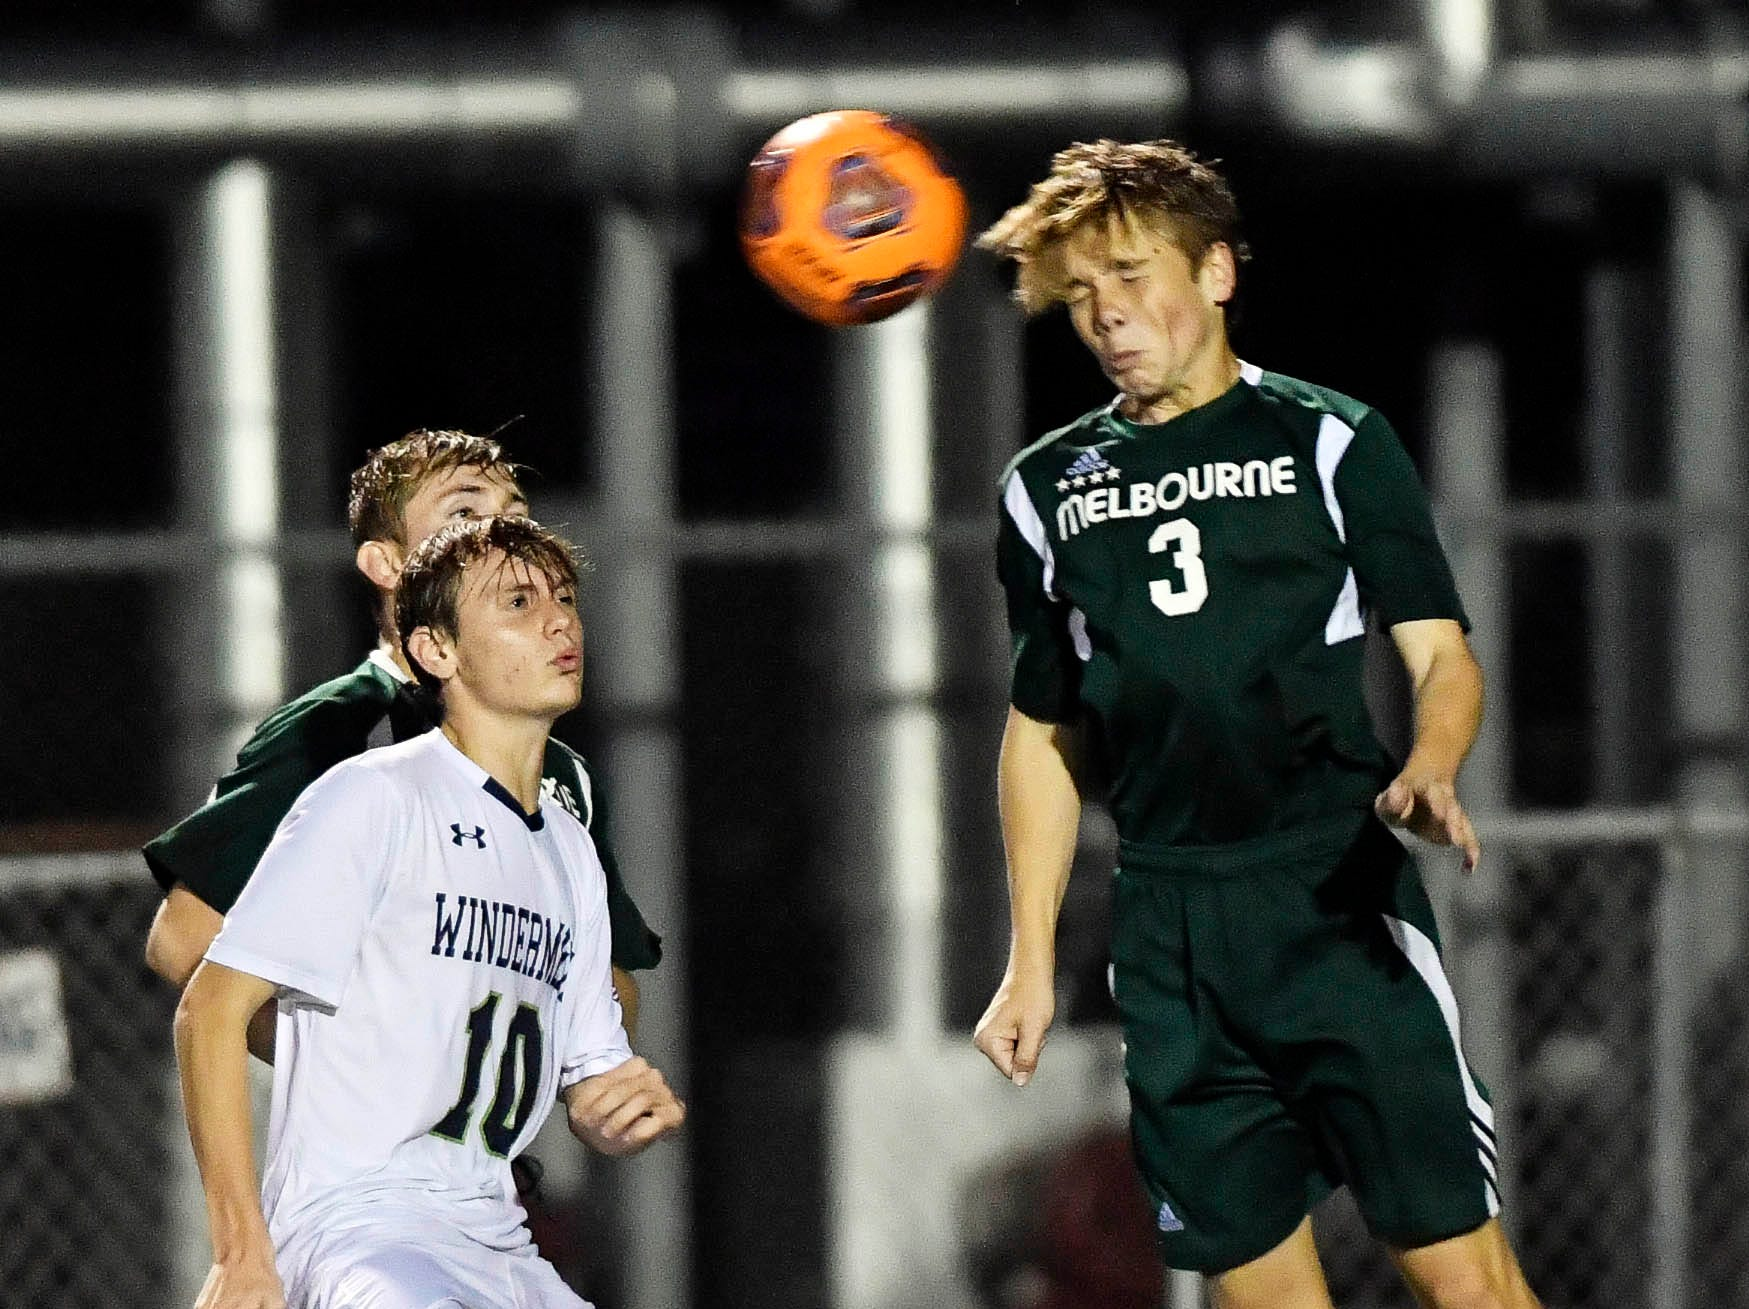 Luke Russo of Melbourne heads the ball away from a Windermere player during Saturday's Class 4A boys soccer regional semifinal.